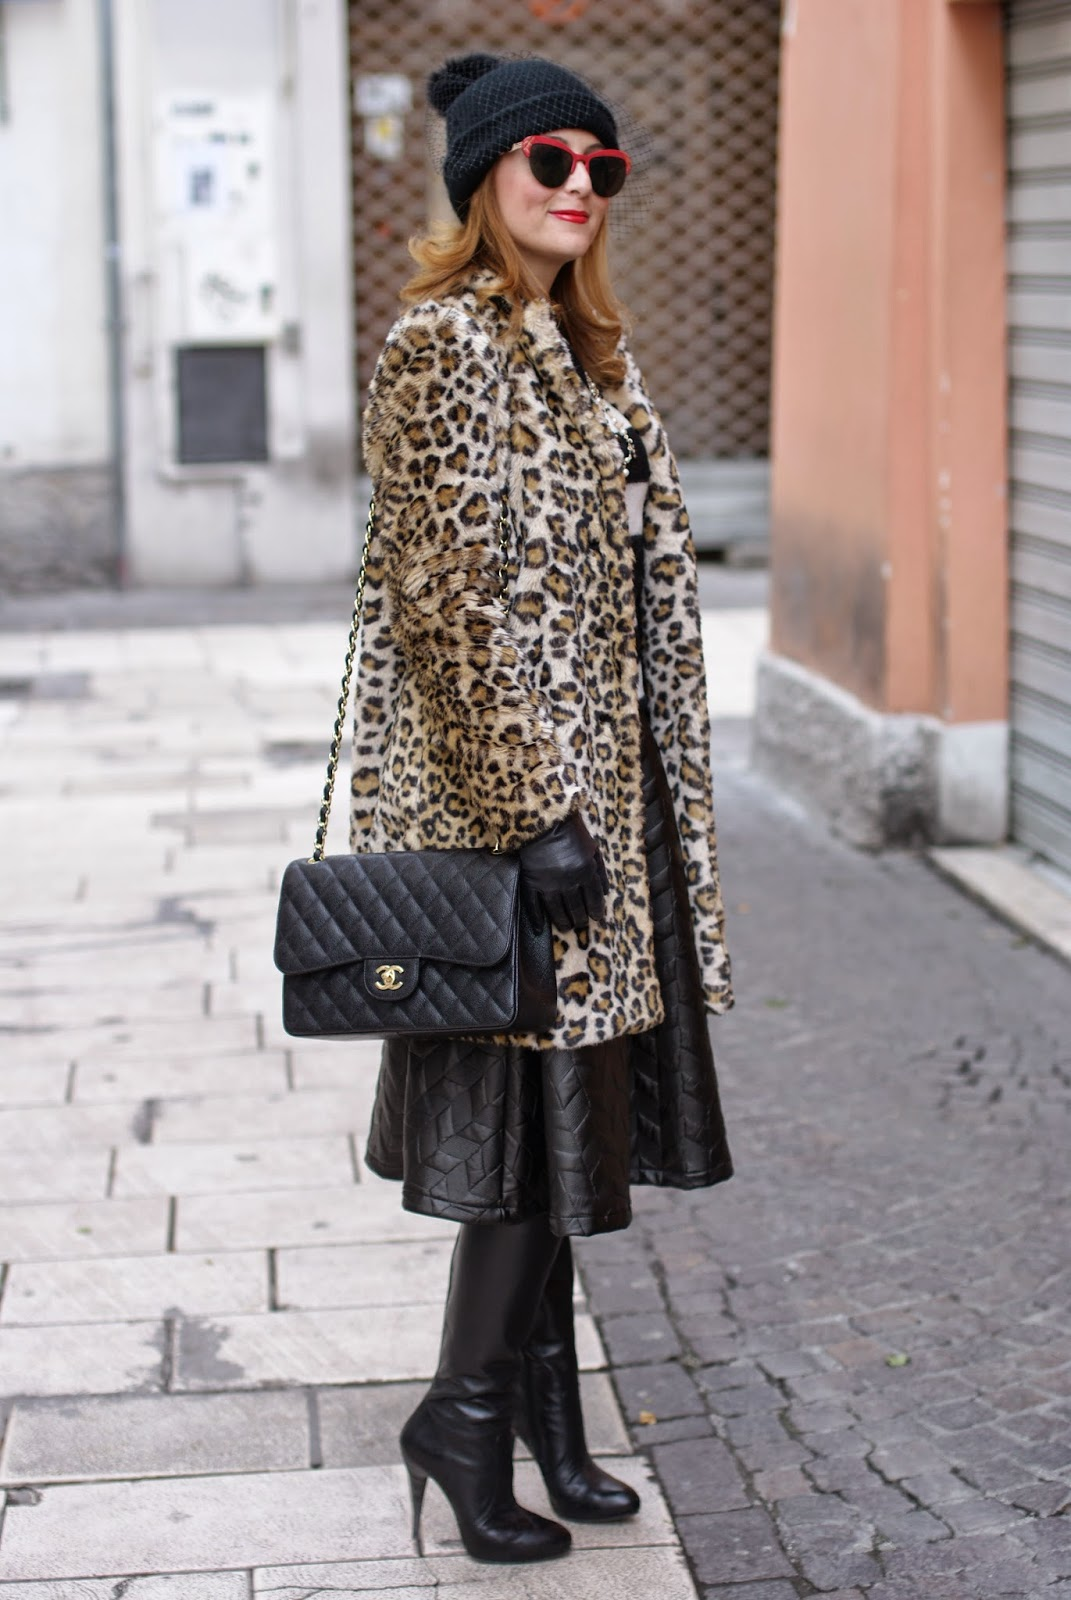 Zara leopard print faux fur coat with veiled beanie hat and Chanel 2.55 classic flap bag on Fashion and Cookies fashion blogger